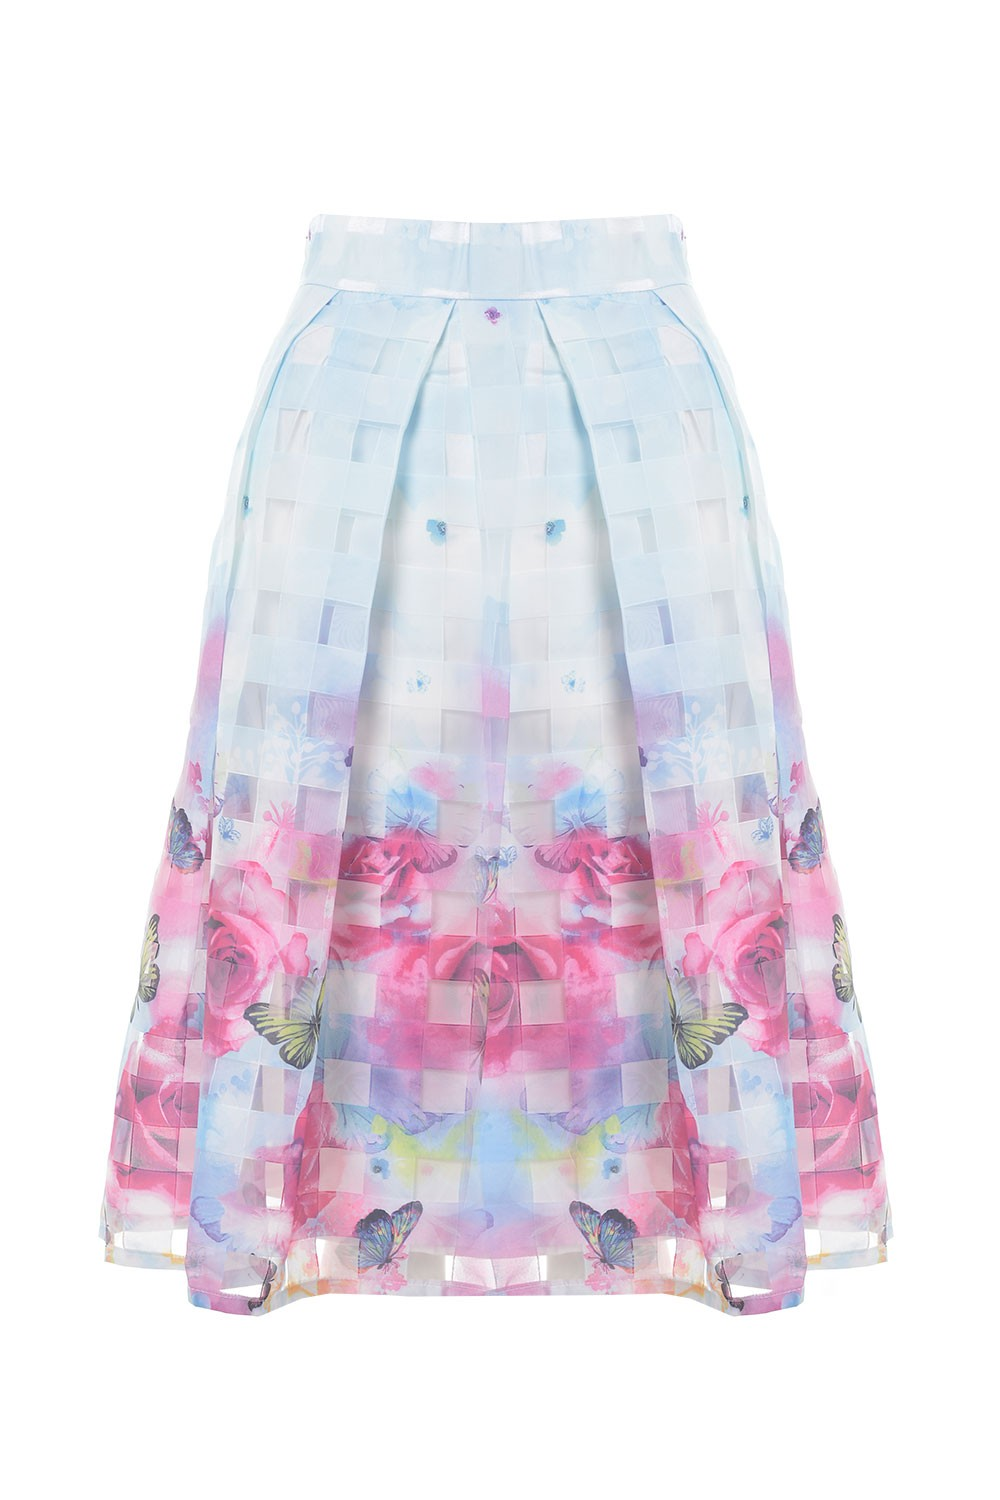 printed skater skirt in blue and pink